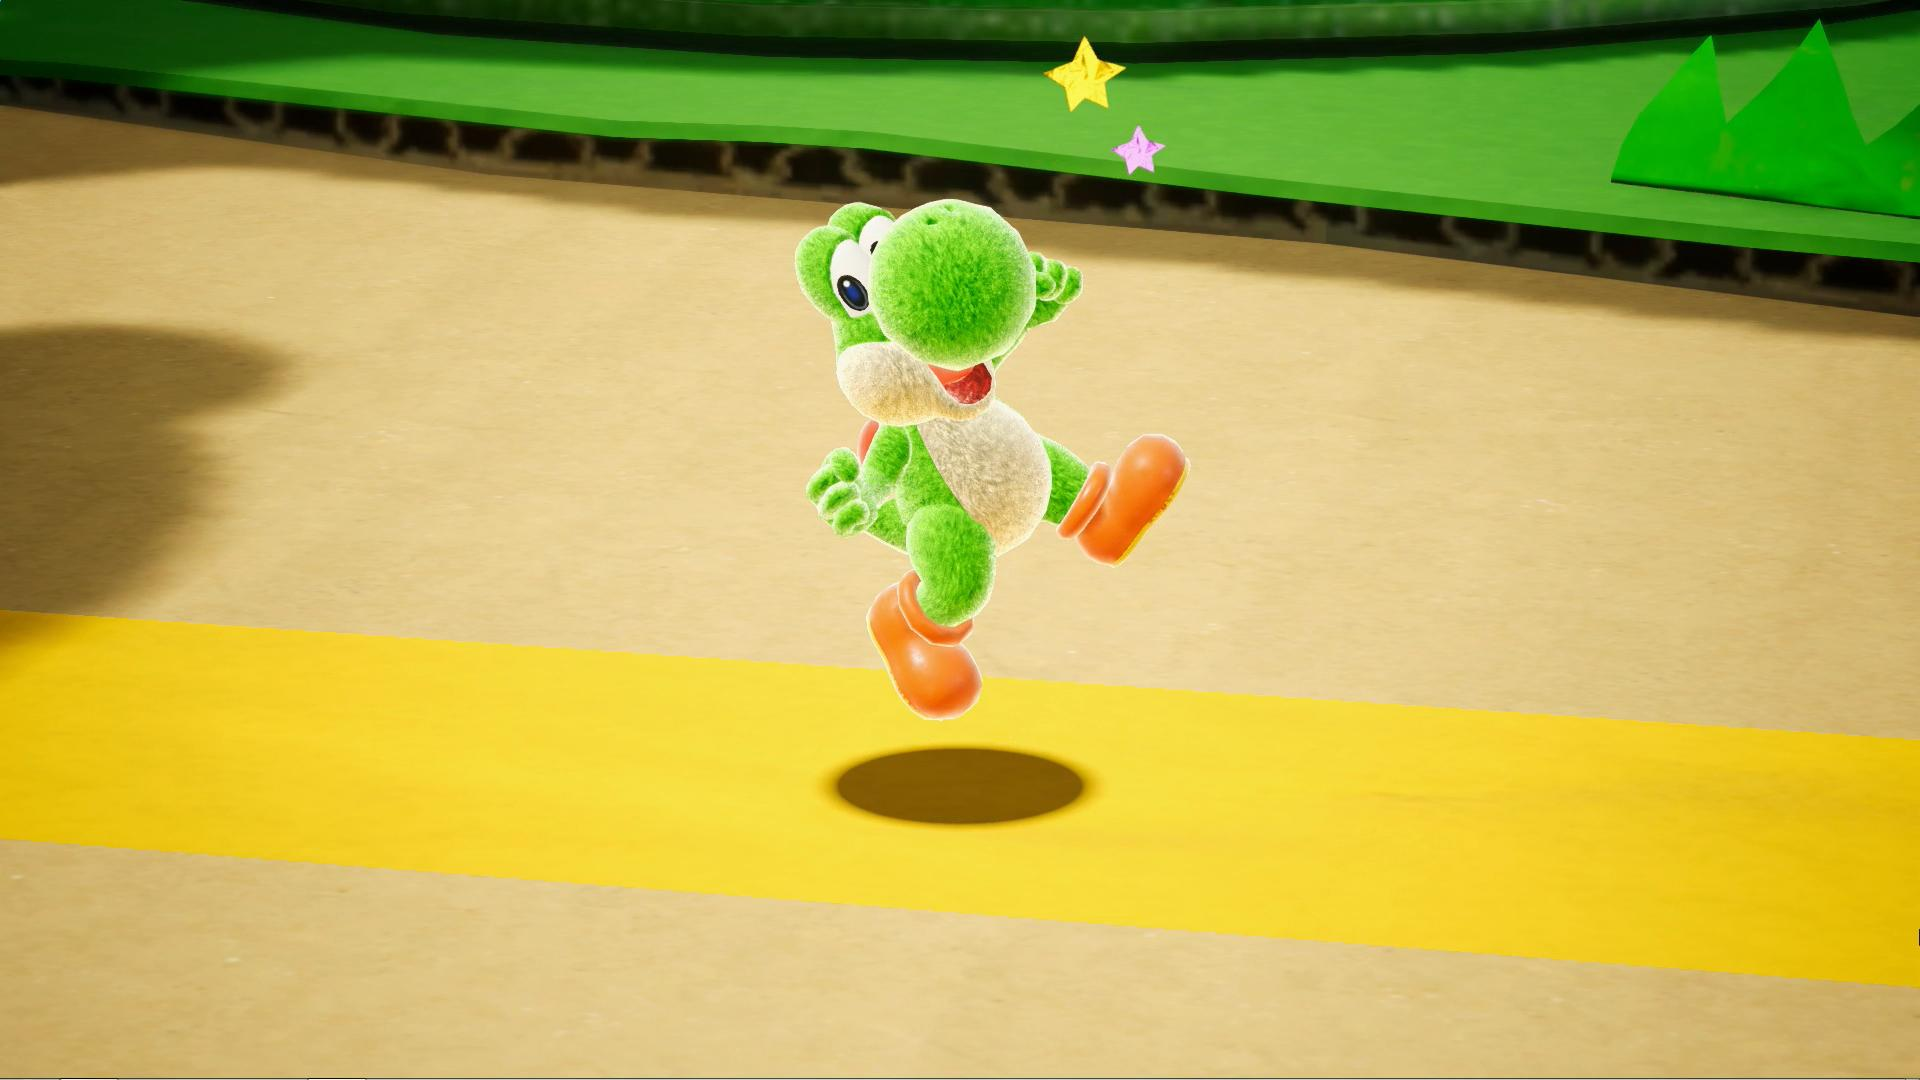 Yoshi for Nintendo Switch has been delayed to 2019